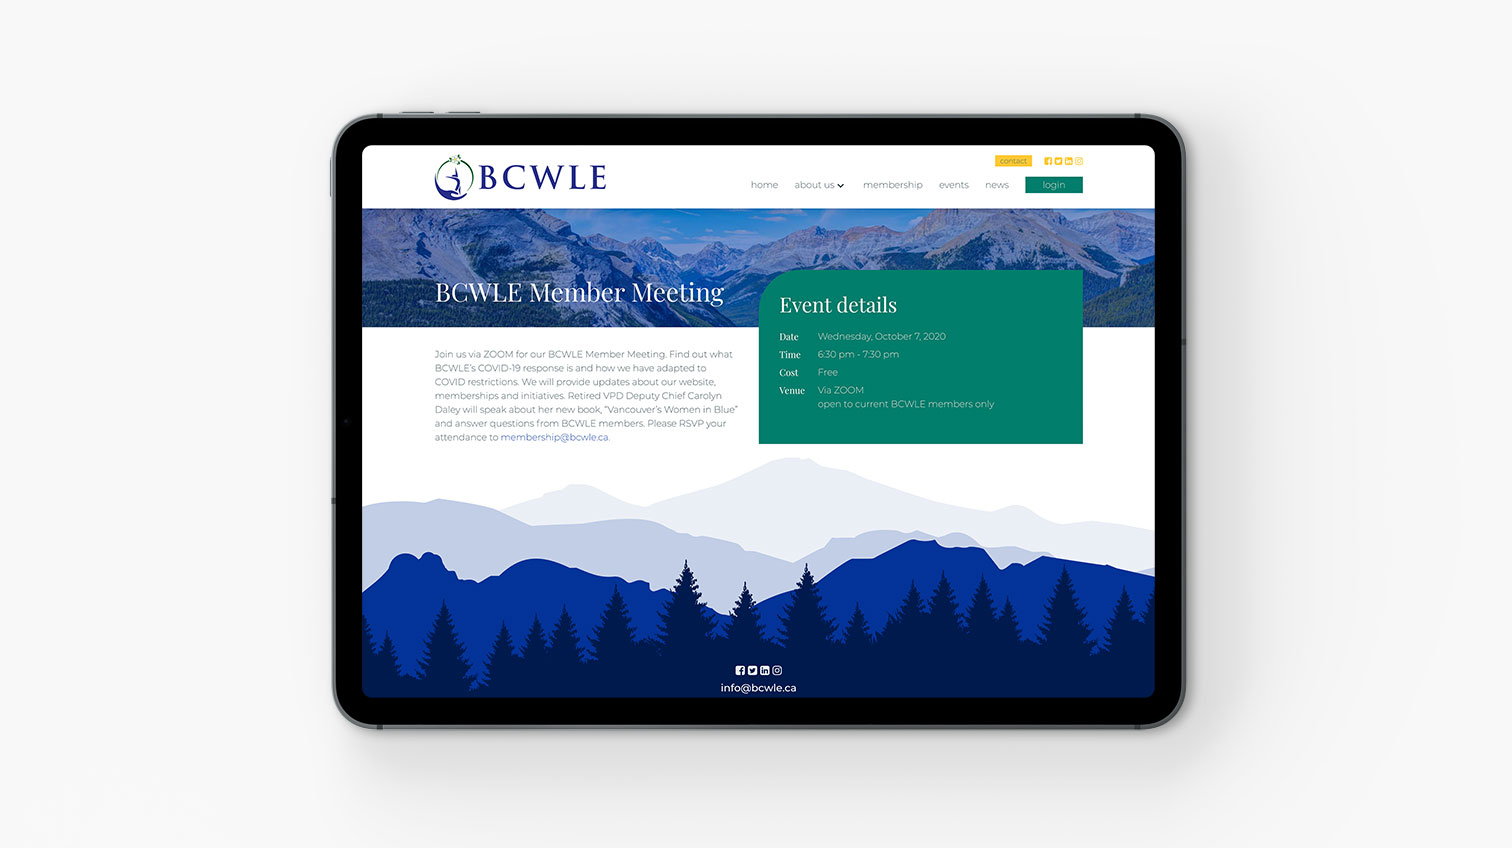 BCWLE website viewed in a tablet device - White Canvas Design